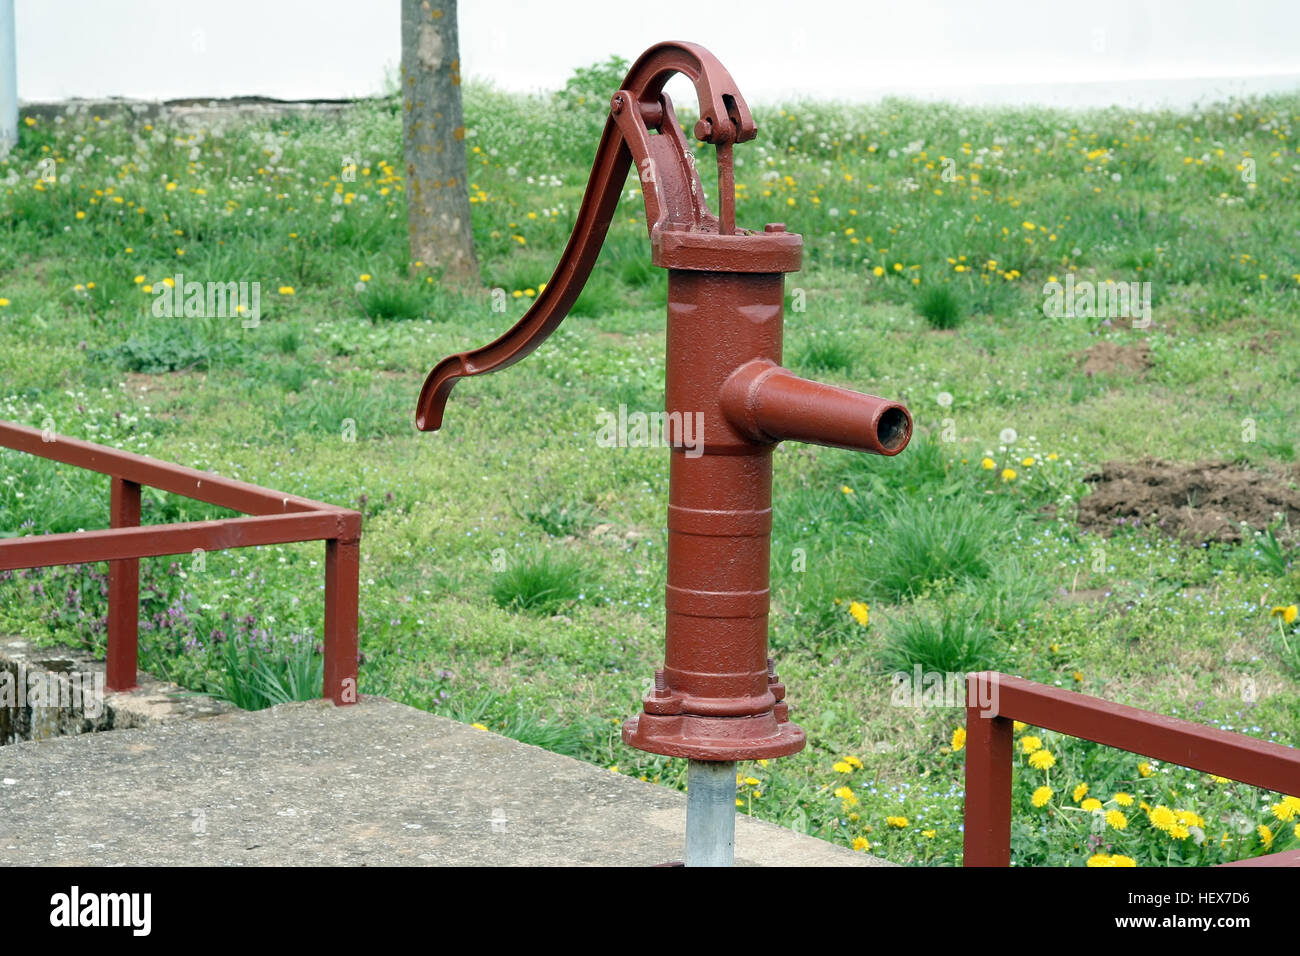 Vintage water faucet. Old water pump Stock Photo, Royalty Free Image ...